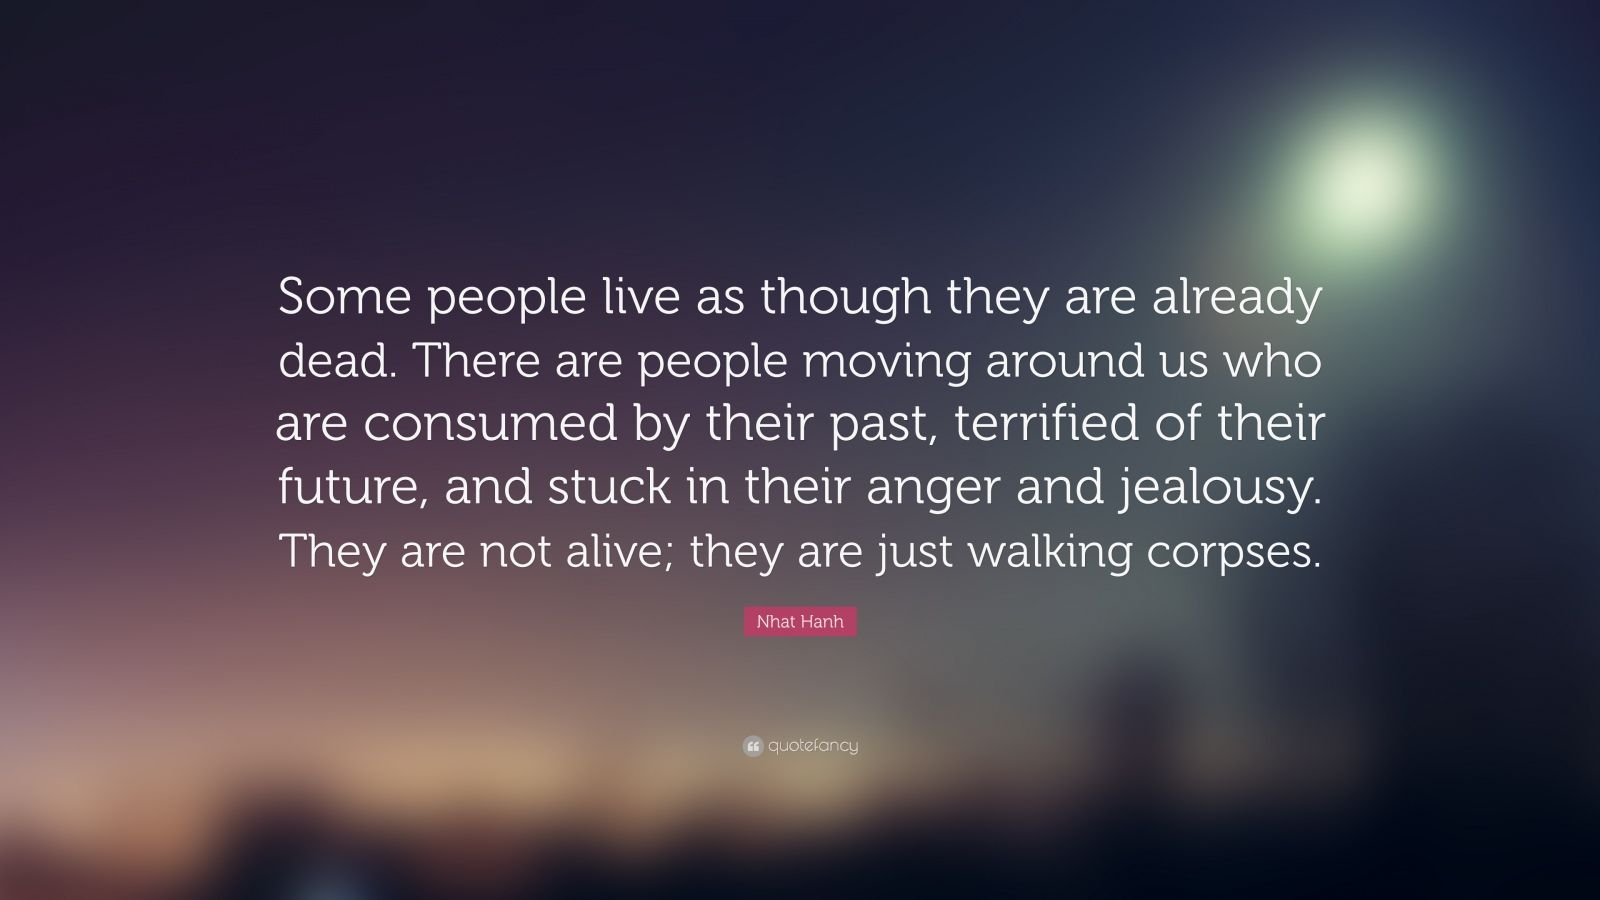 "Nhat Hanh Quote: ""Some people live as though they are already dead. There are people moving around us who are consumed by their past, terrified of their future, and stuck in their anger and jealousy. They are not alive; they are just walking corpses."""